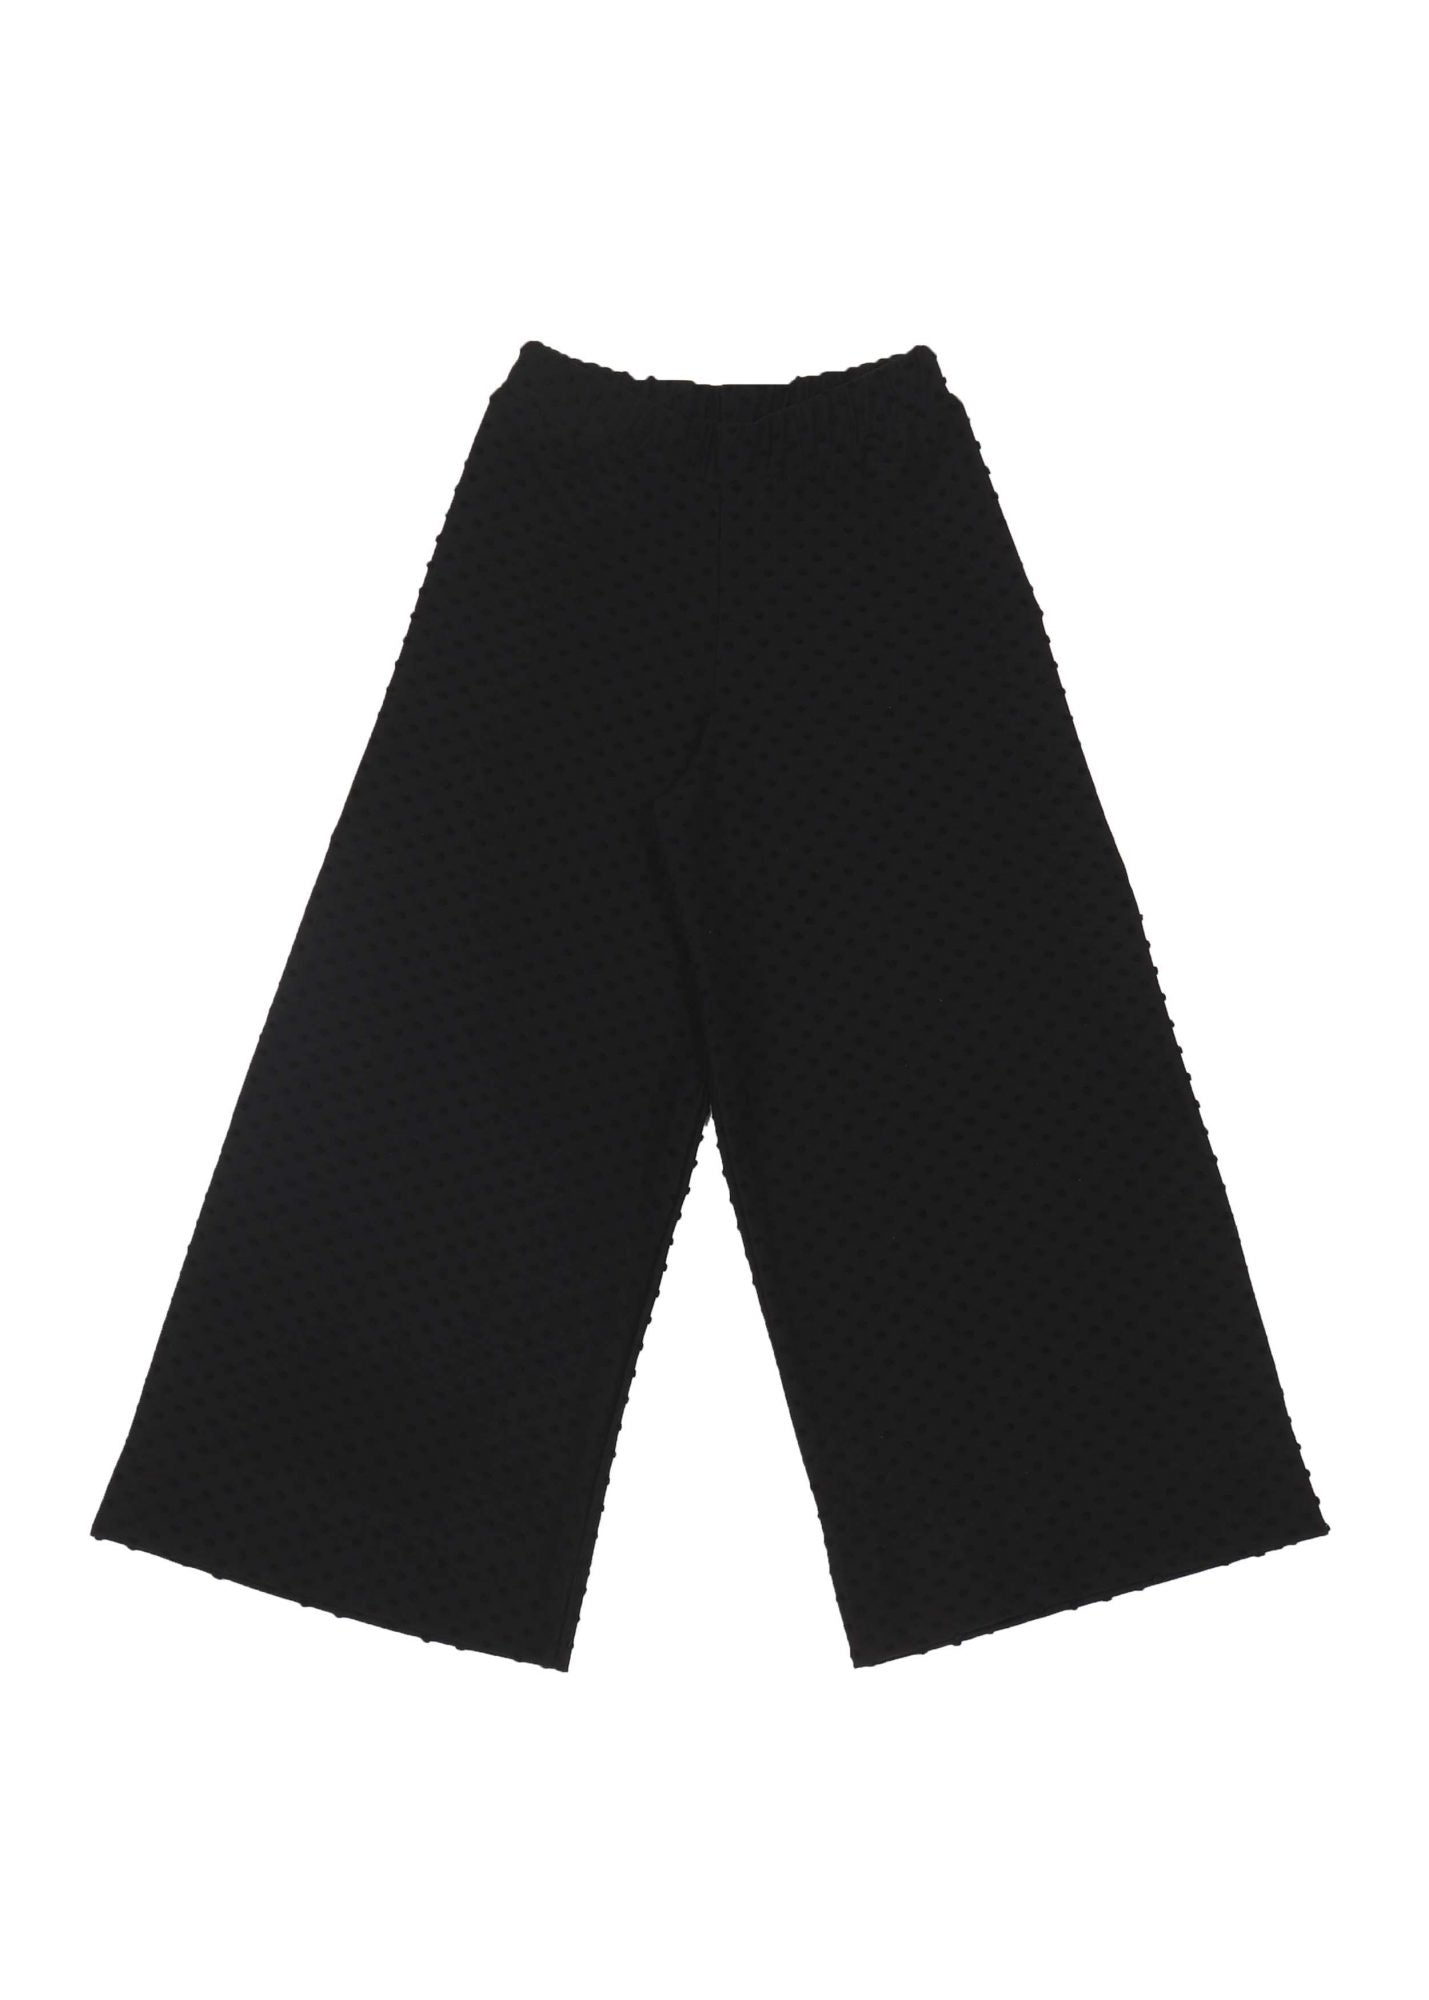 Alex culottes, black dot